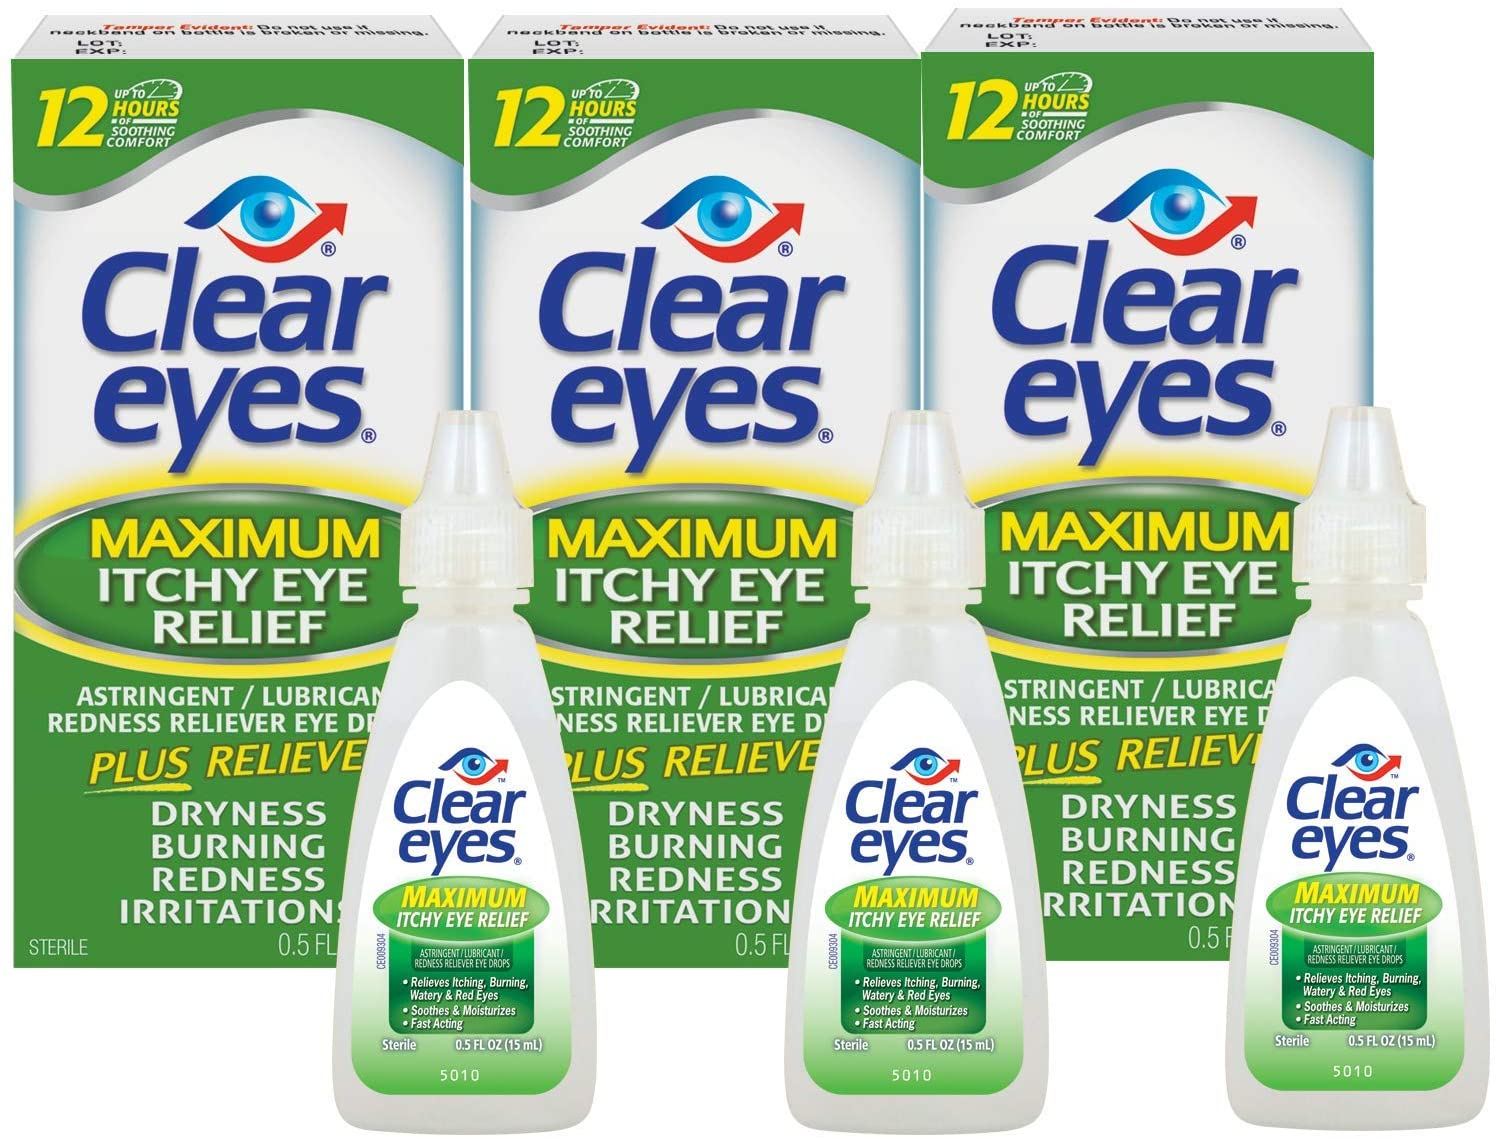 Clear Eyes Eye Drops, Maximum Itchy Eye Relief, 0.5 oz, Pack of 3